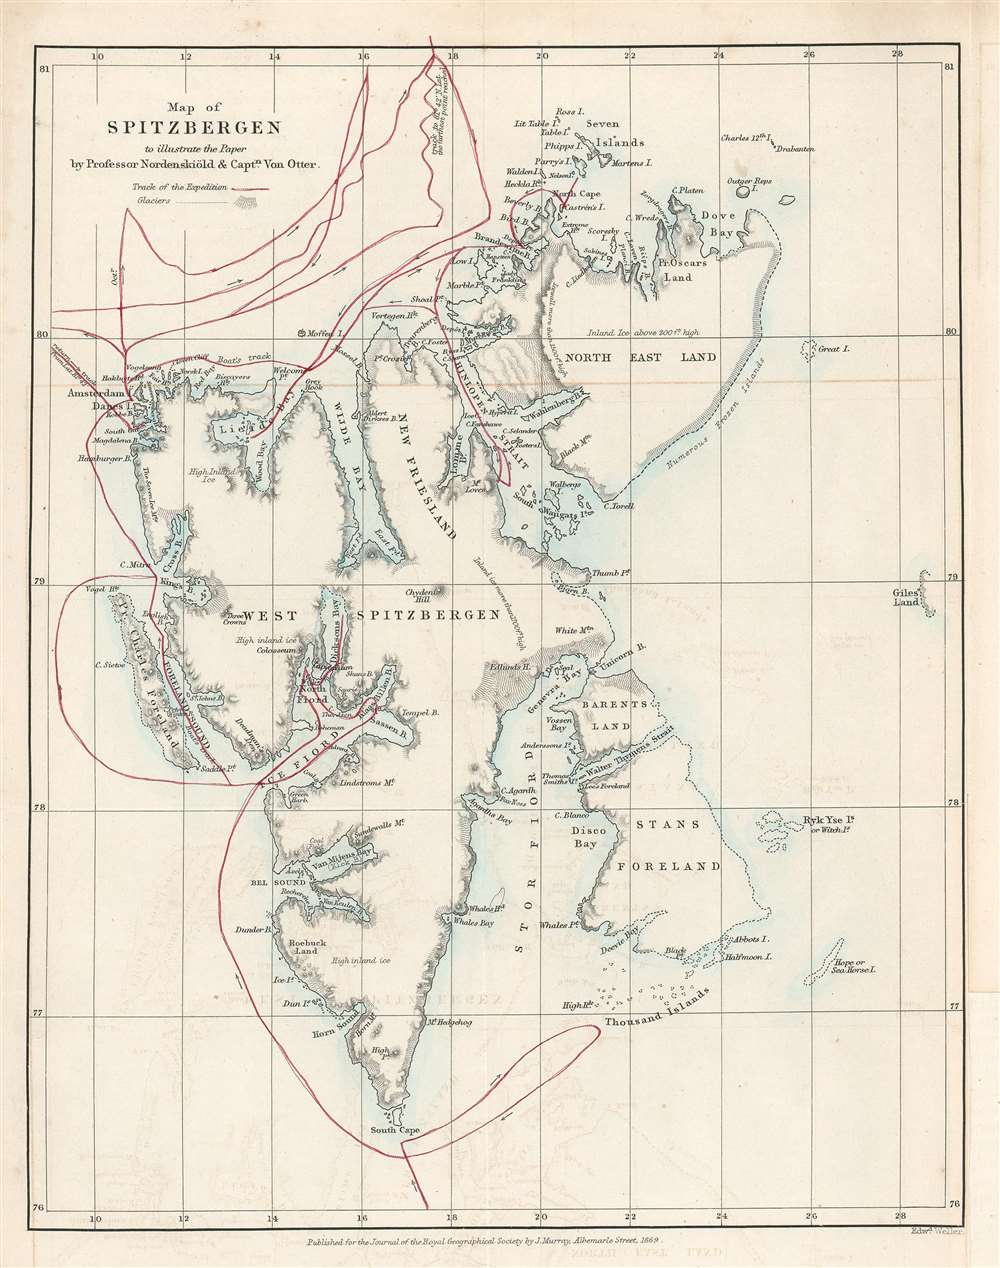 Map of Spitzbergen to illustrate the Paper by Professor Nordenskiöld and Captain Von Otter. - Main View